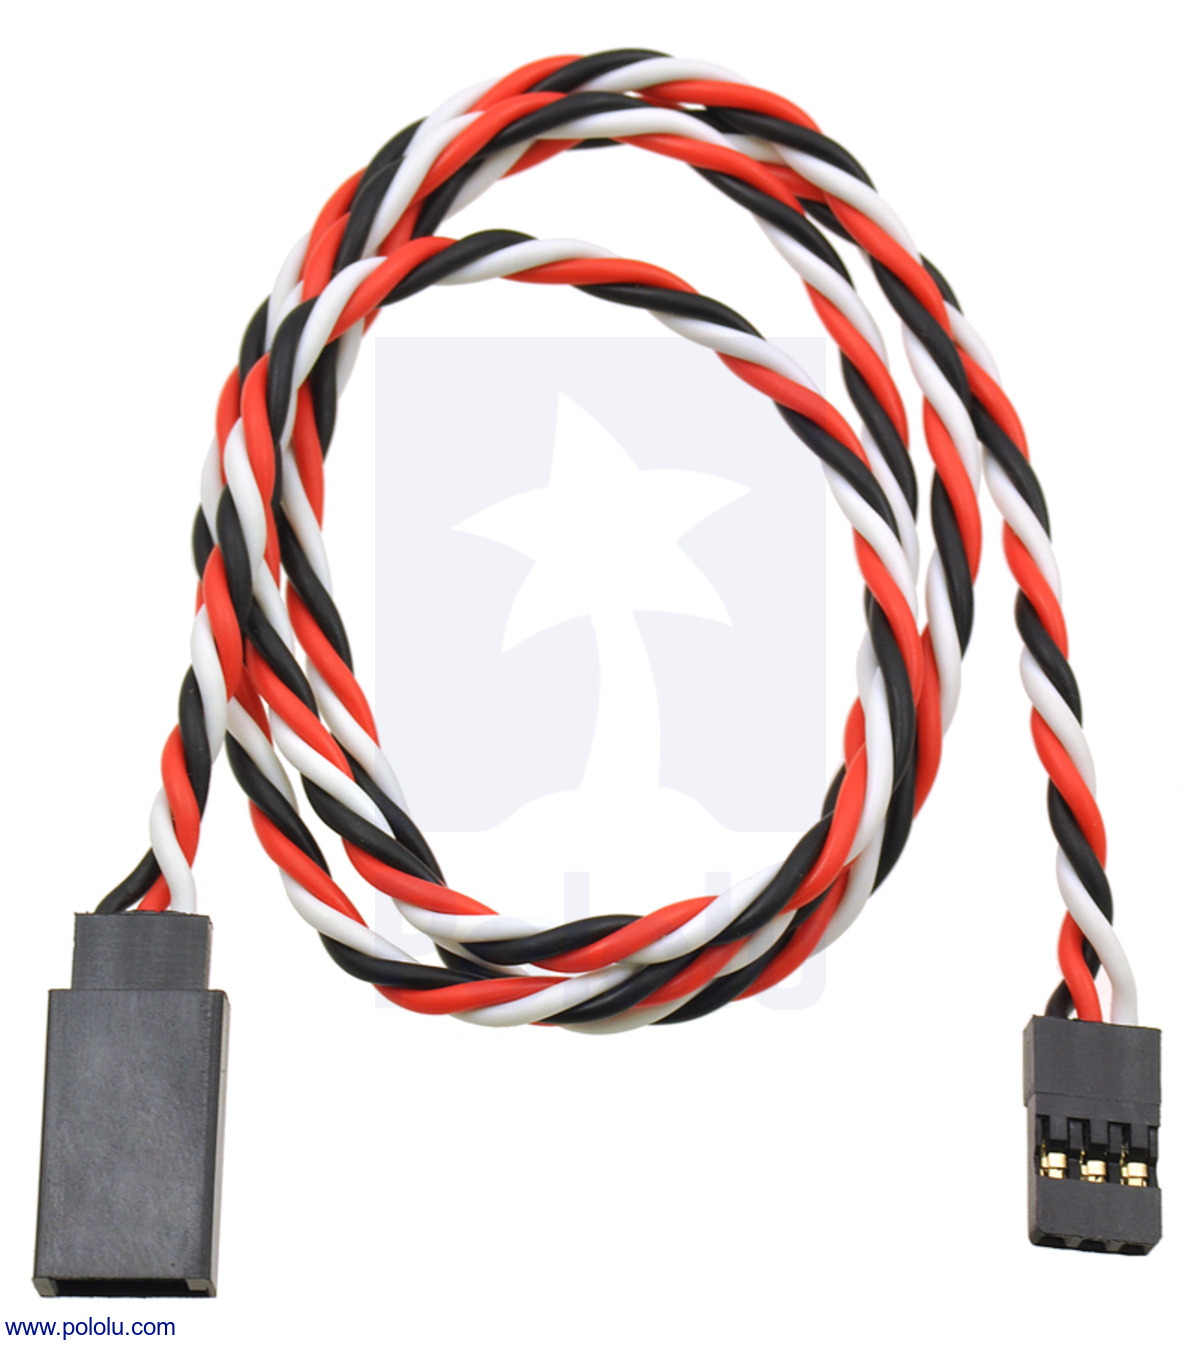 Pololu - Twisted Servo Extension Cable 12 U0026quot  Male